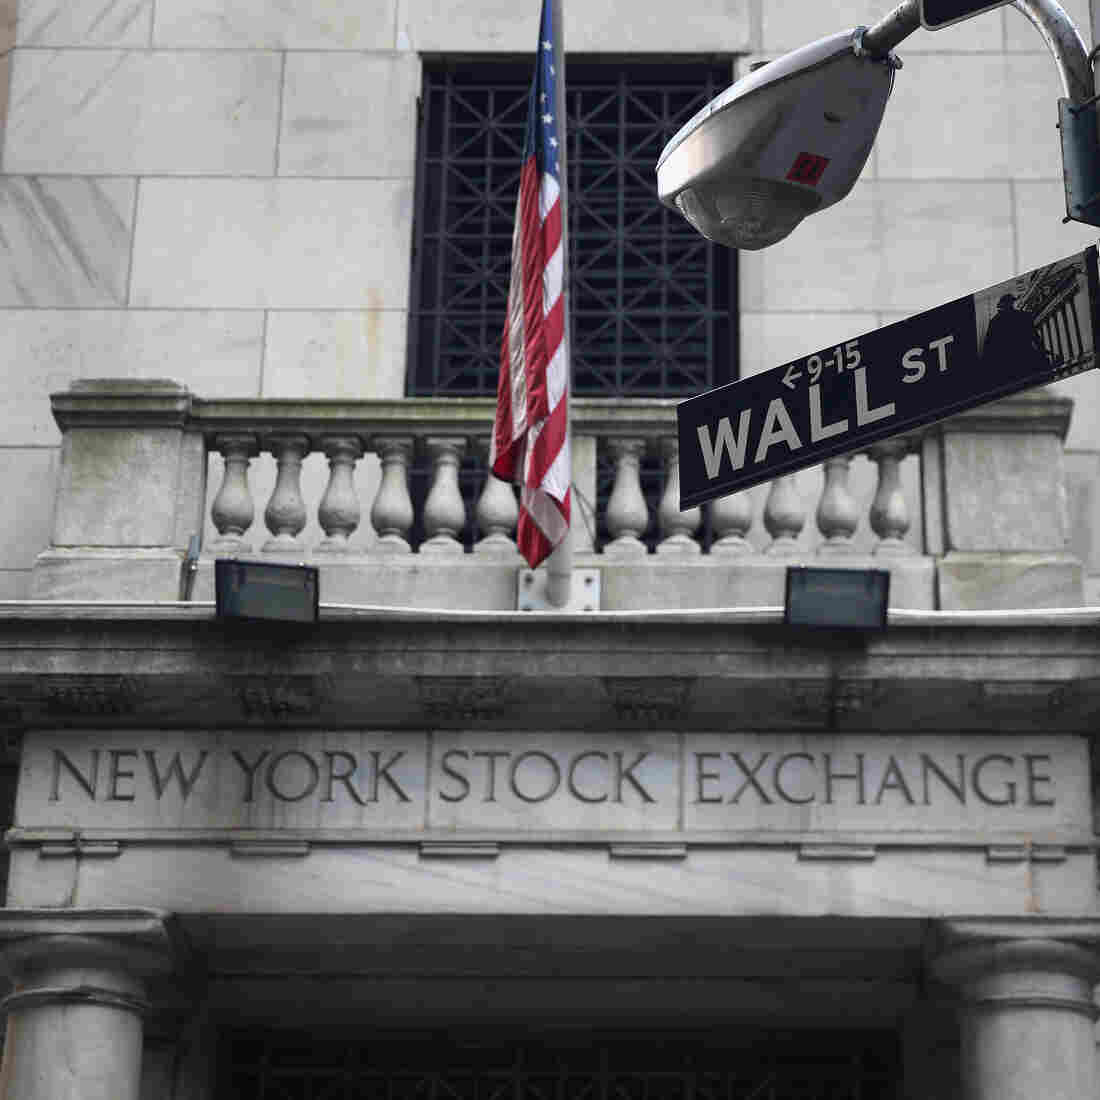 The New York Stock Exchange building photographed last month.